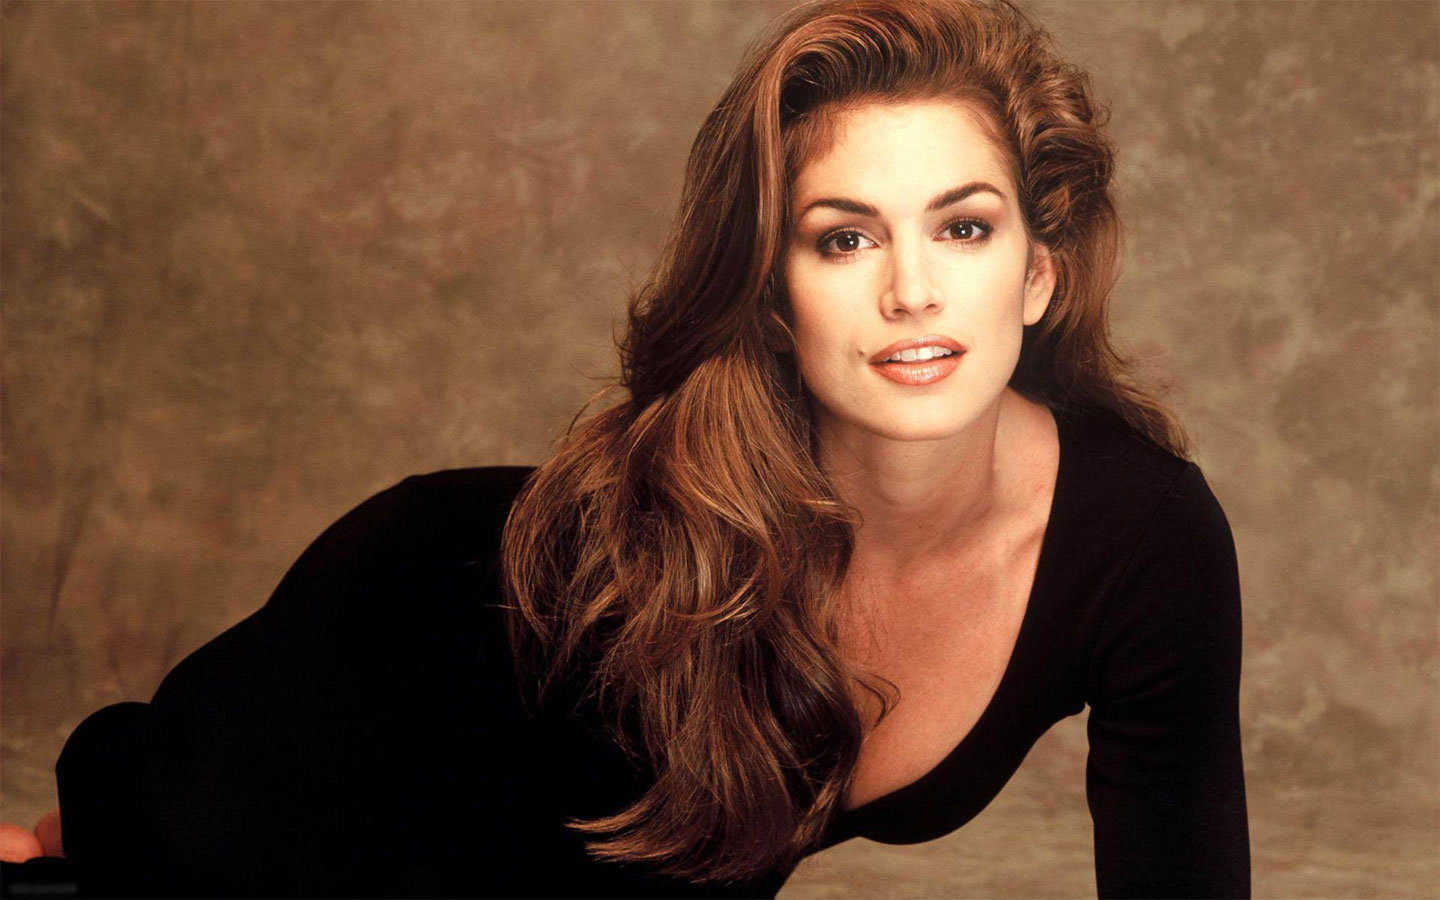 Cindy Crawford Wallpapers Images Fun 1440x900